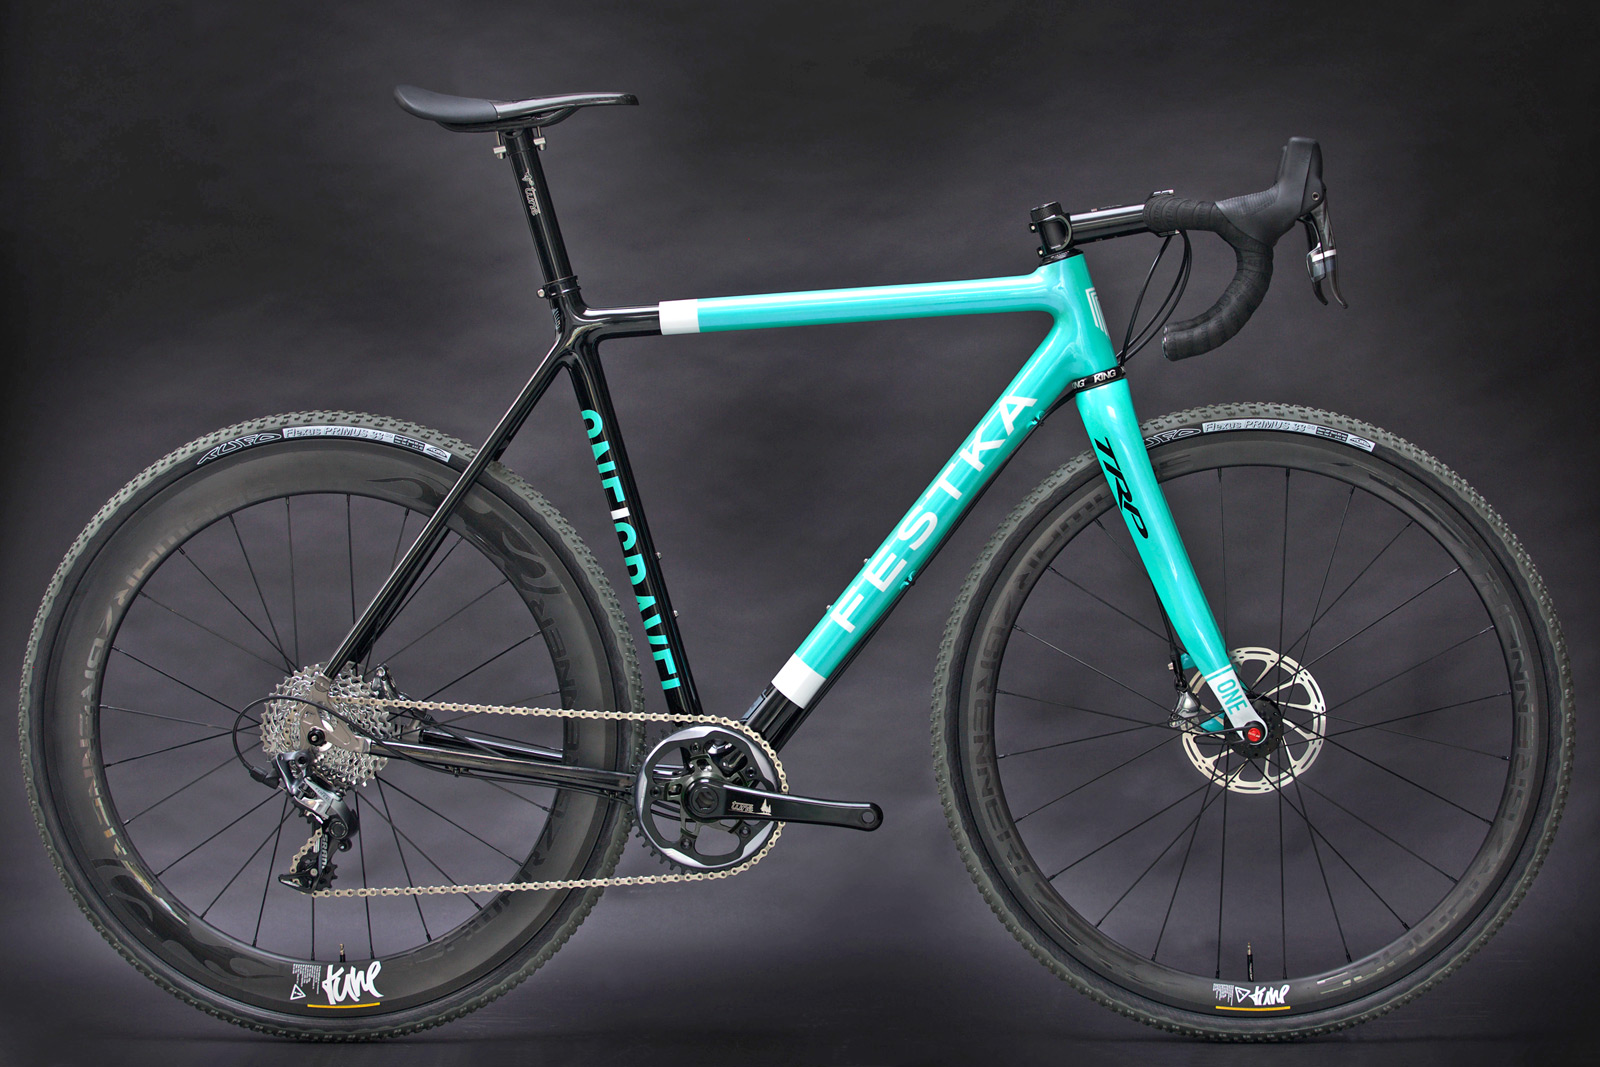 Eb15 Festka Focuses Its Carbon And Ti Road Line Up With